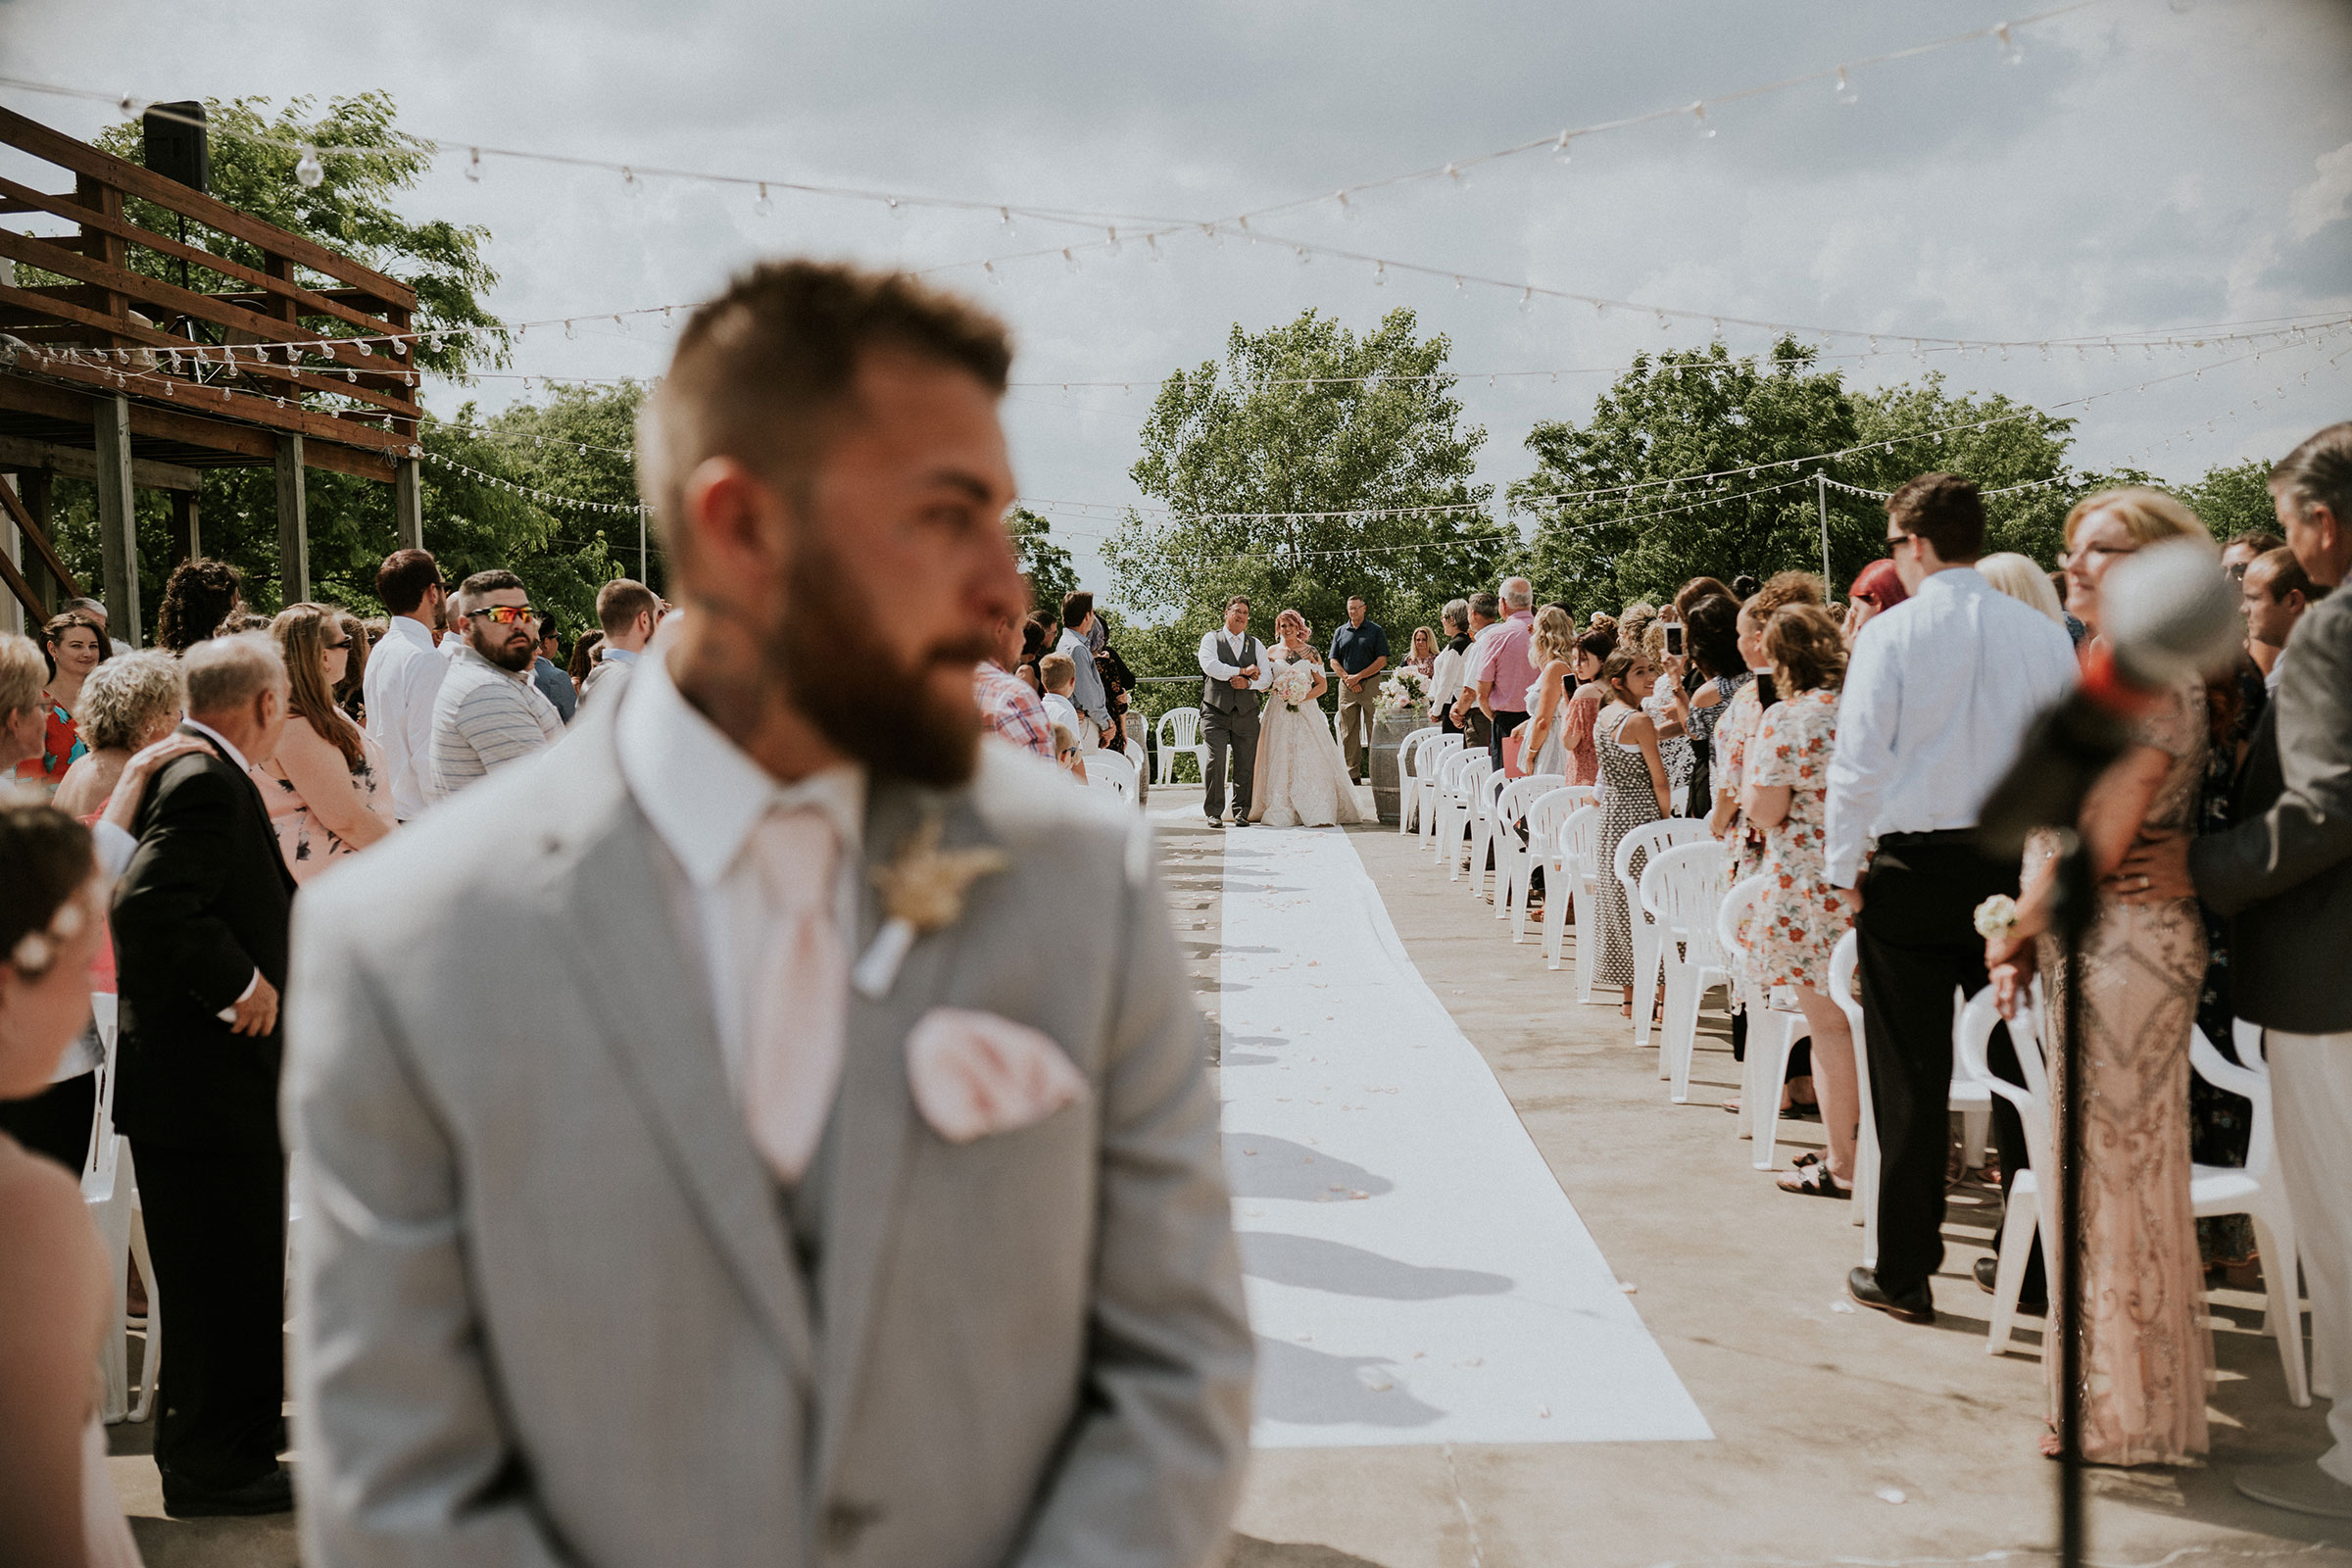 groom-turned-away-from-bride-as-she-walks-down-aisle-wedding-summerset-winery-indianola-iowa-raelyn-ramey-photography.jpg